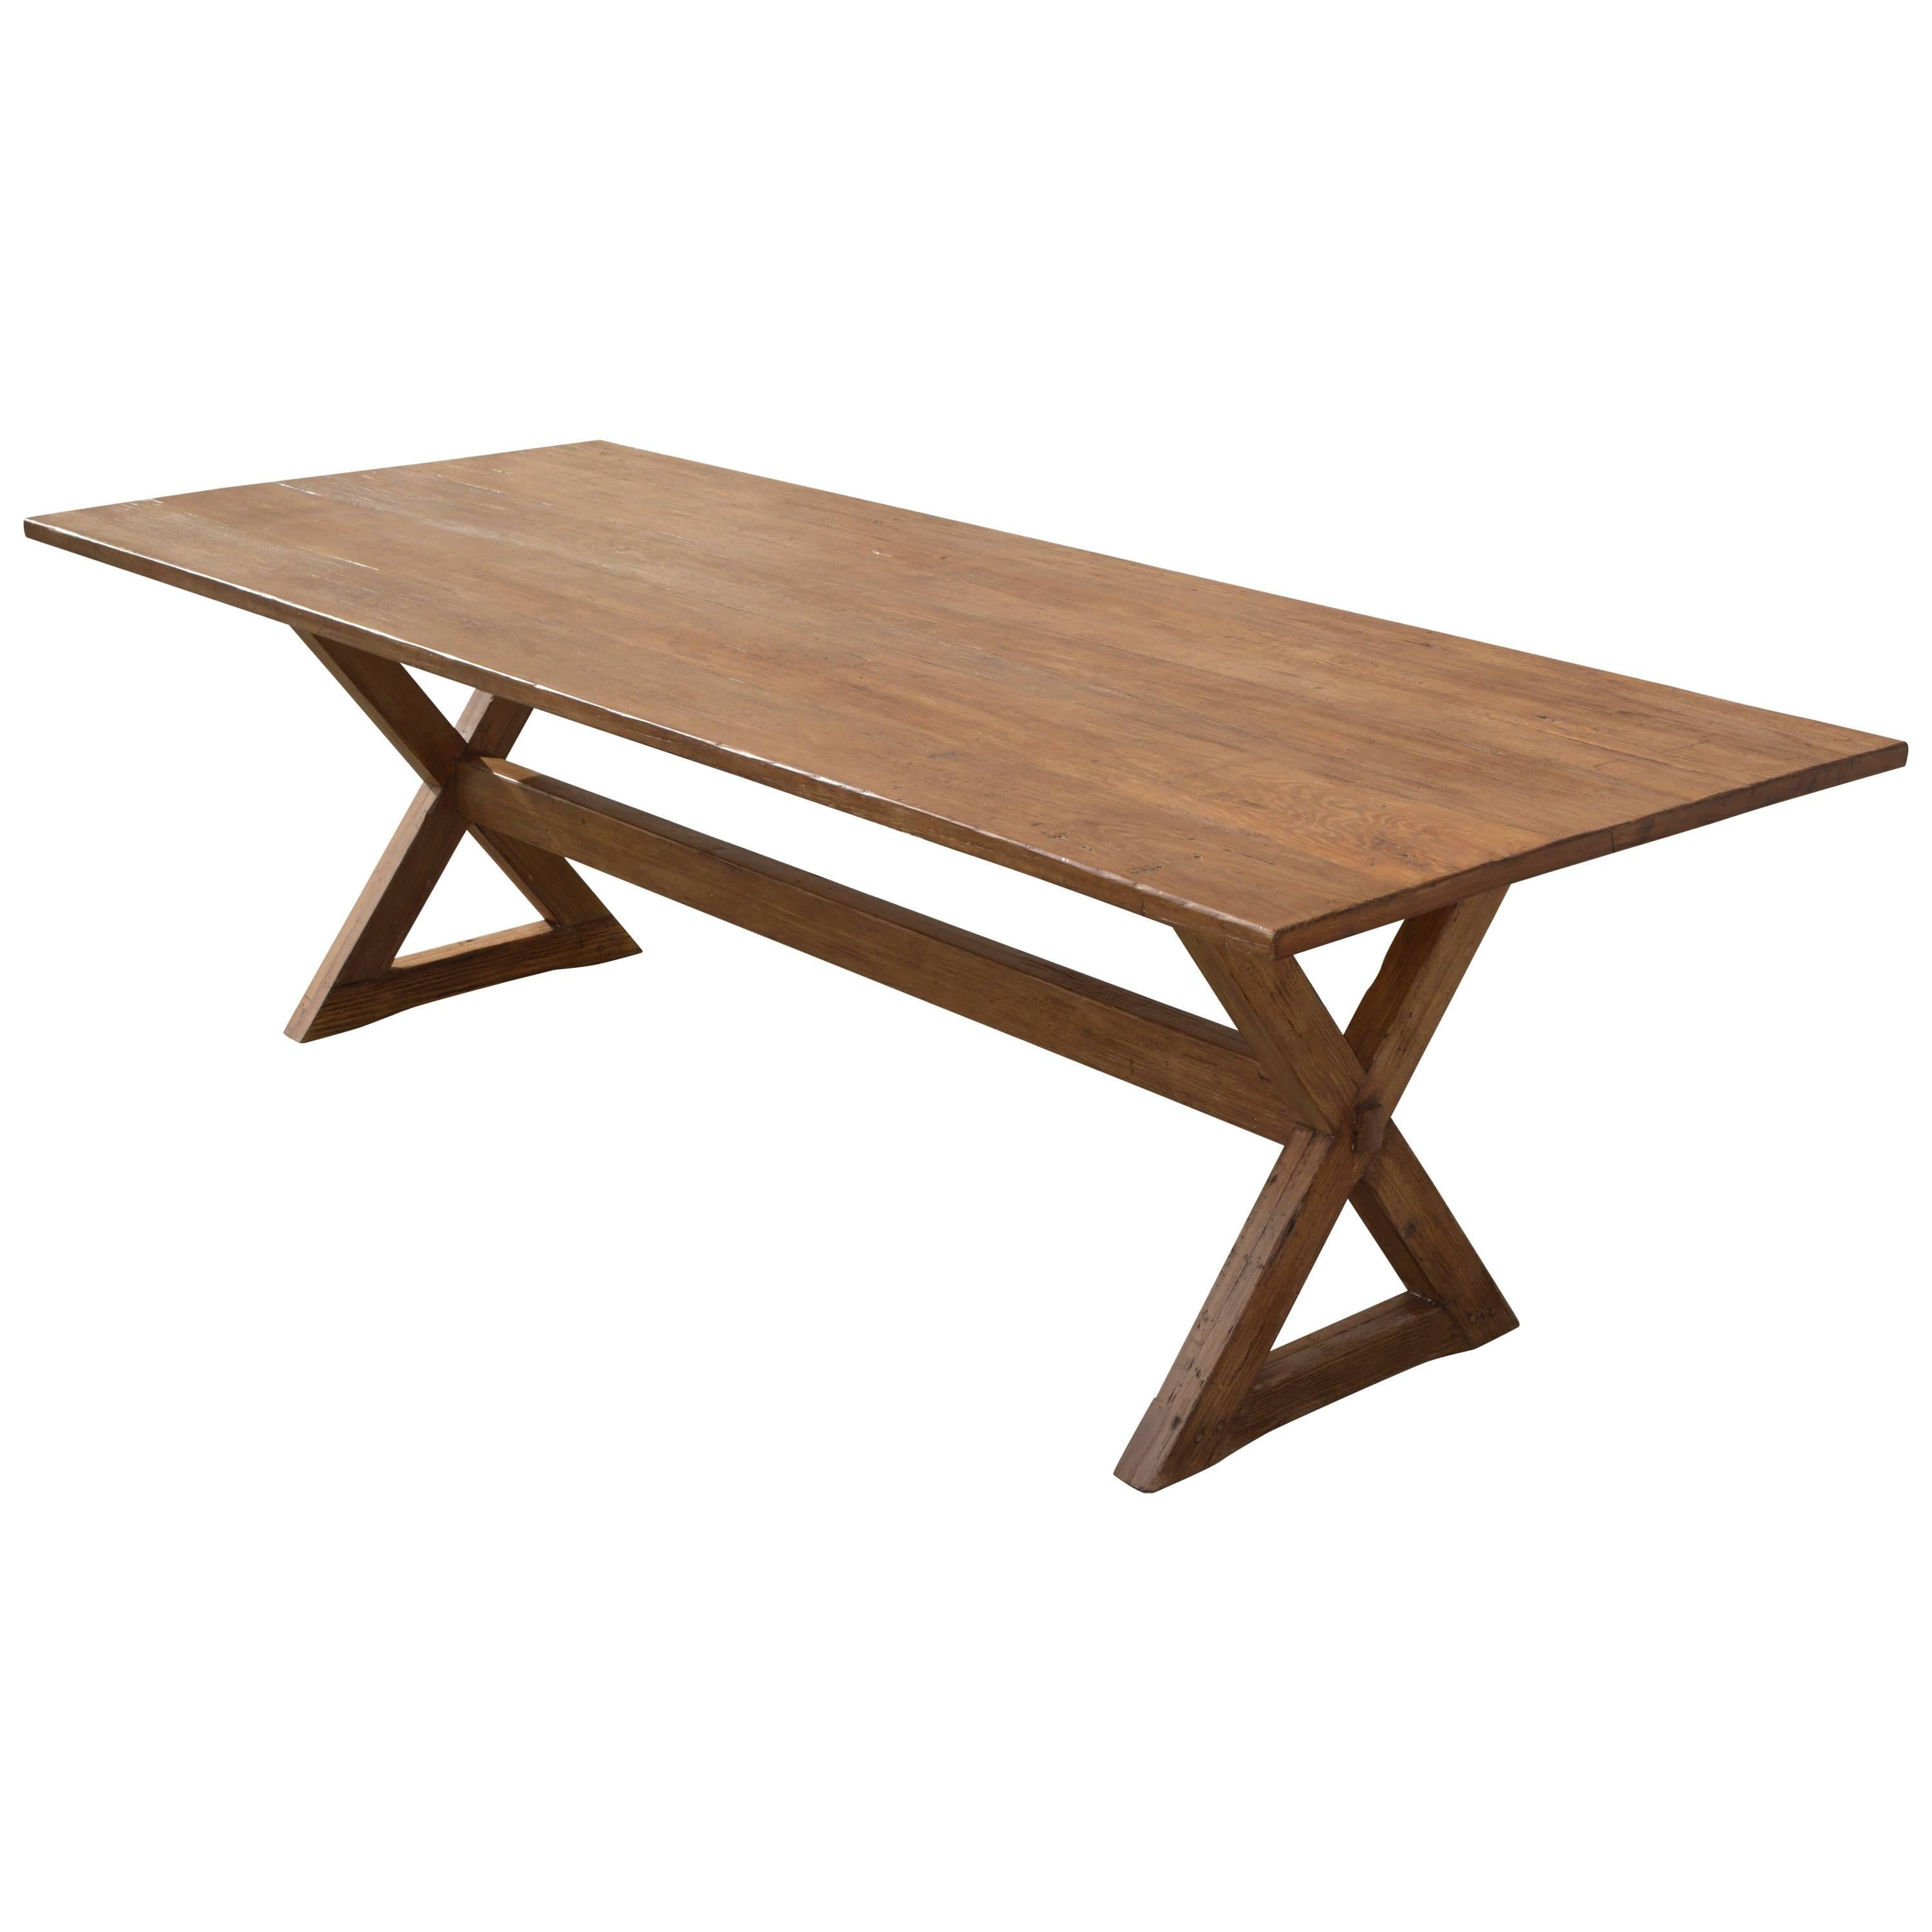 X-Trestle Table in Reclaimed Heart Pine, Custom-Made by Petersen Antiques